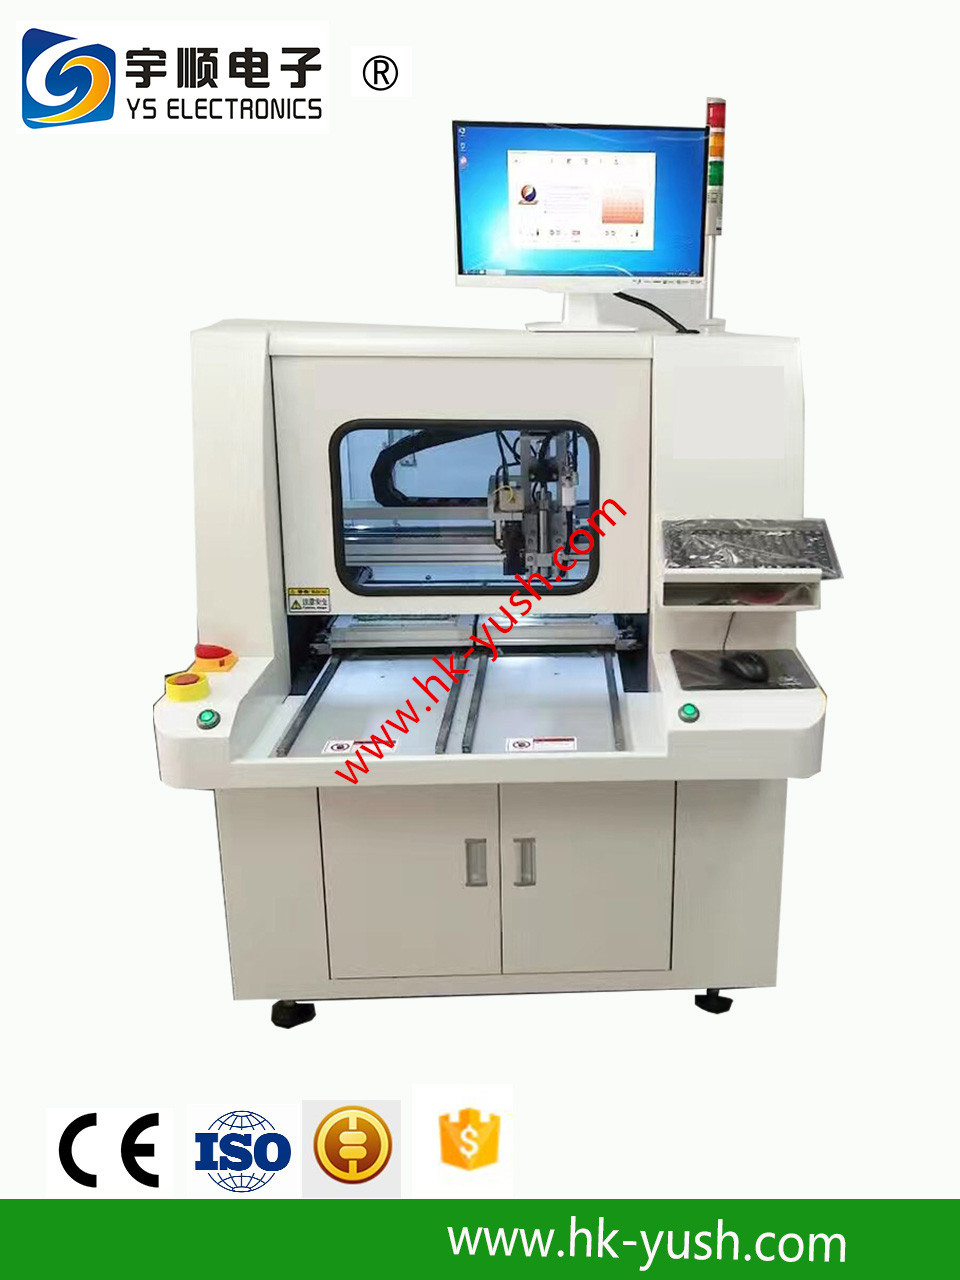 Laser Pcb Depaneling Router Depanelizer Cnc Automatic China V Cut Singulation Machine For Printed Circuit Suitable Small Pieces Of The Final Cutting Base Plate A Mobile Phone Pda Pc Interface Card And So On